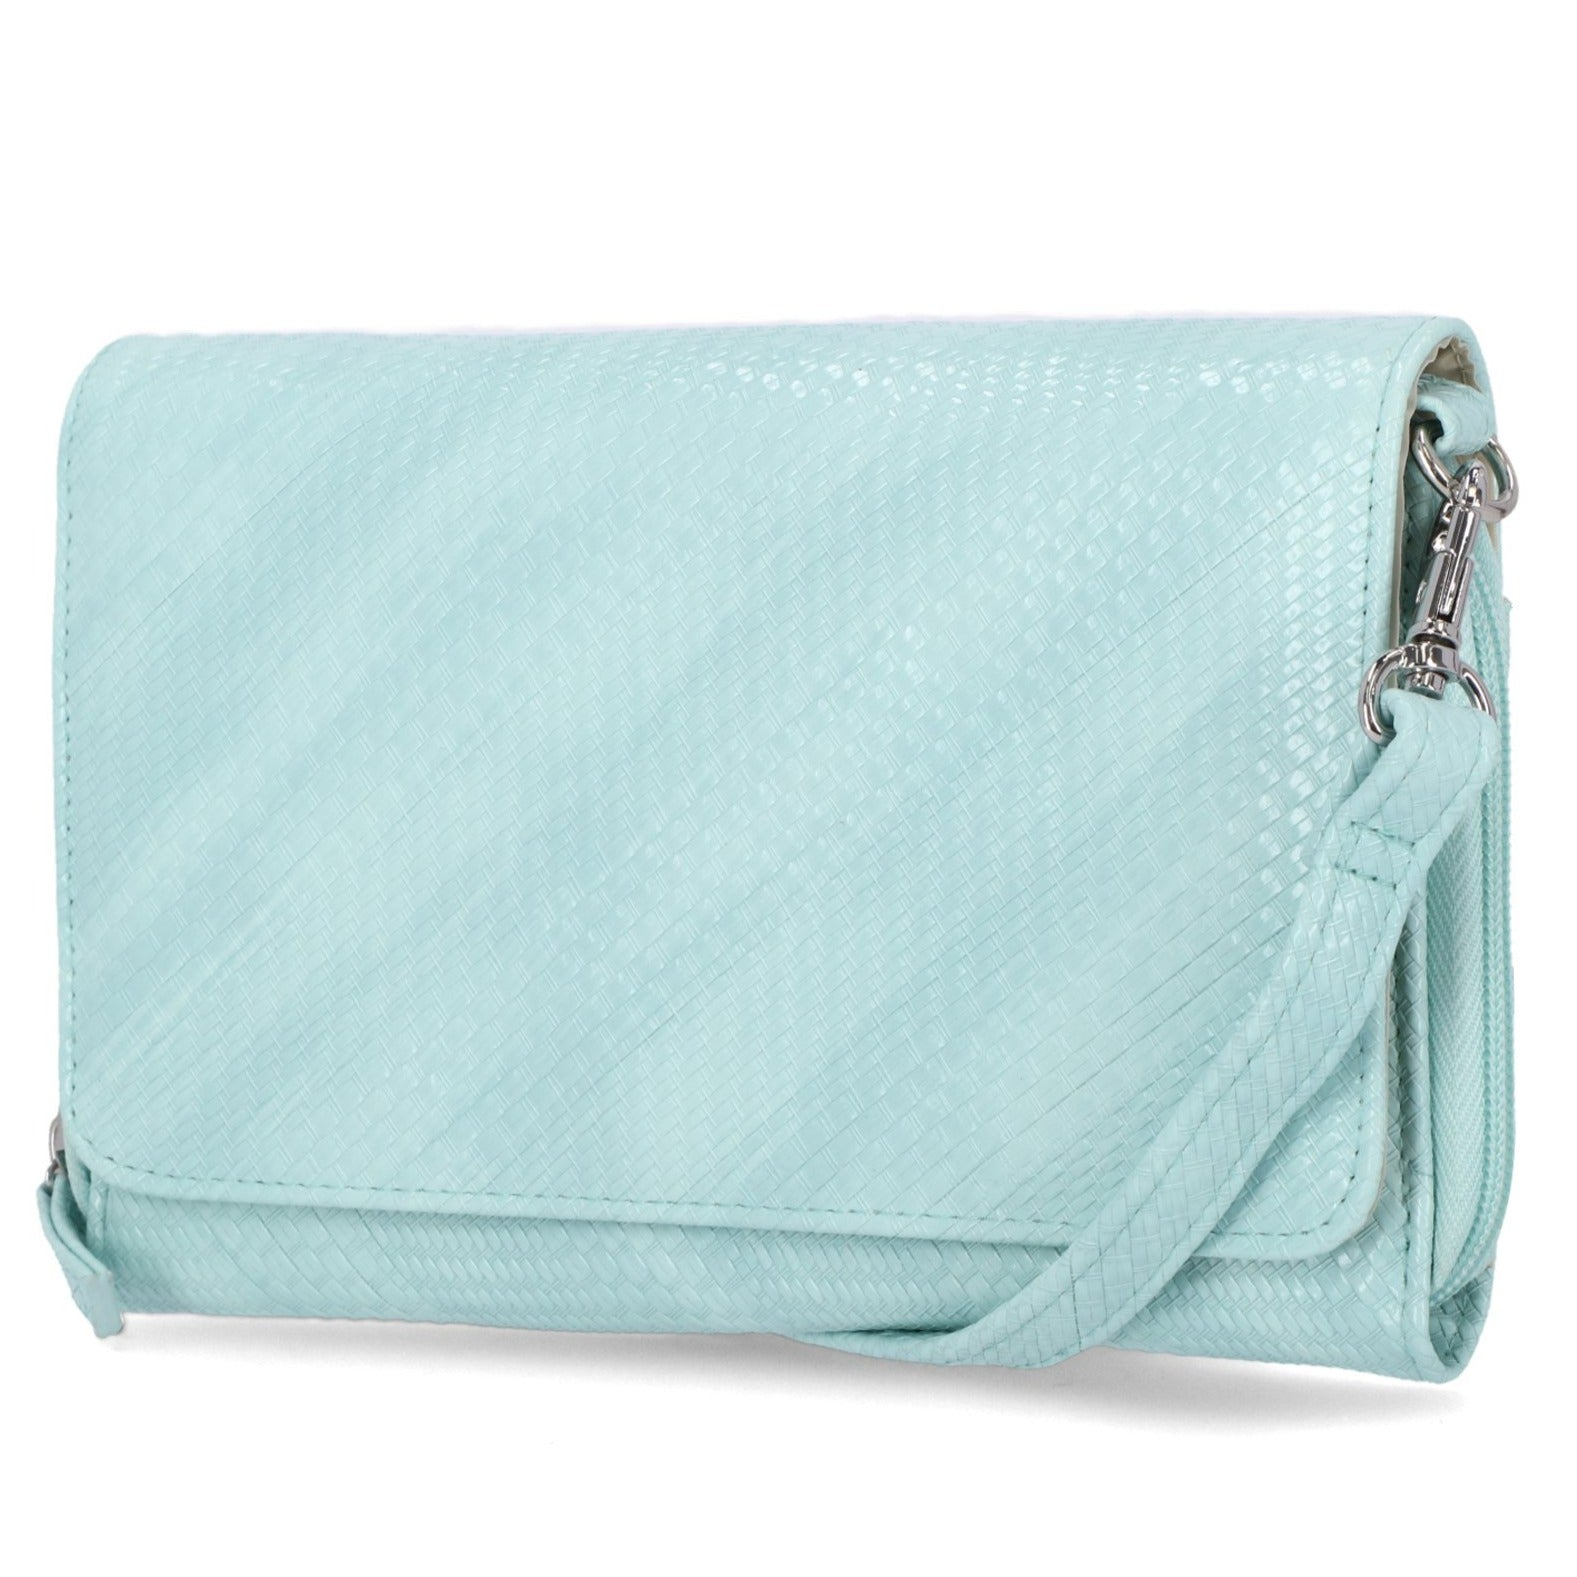 Katie RFID Protected Women's Crossbody Bag - Organizer Wallet - Aqua